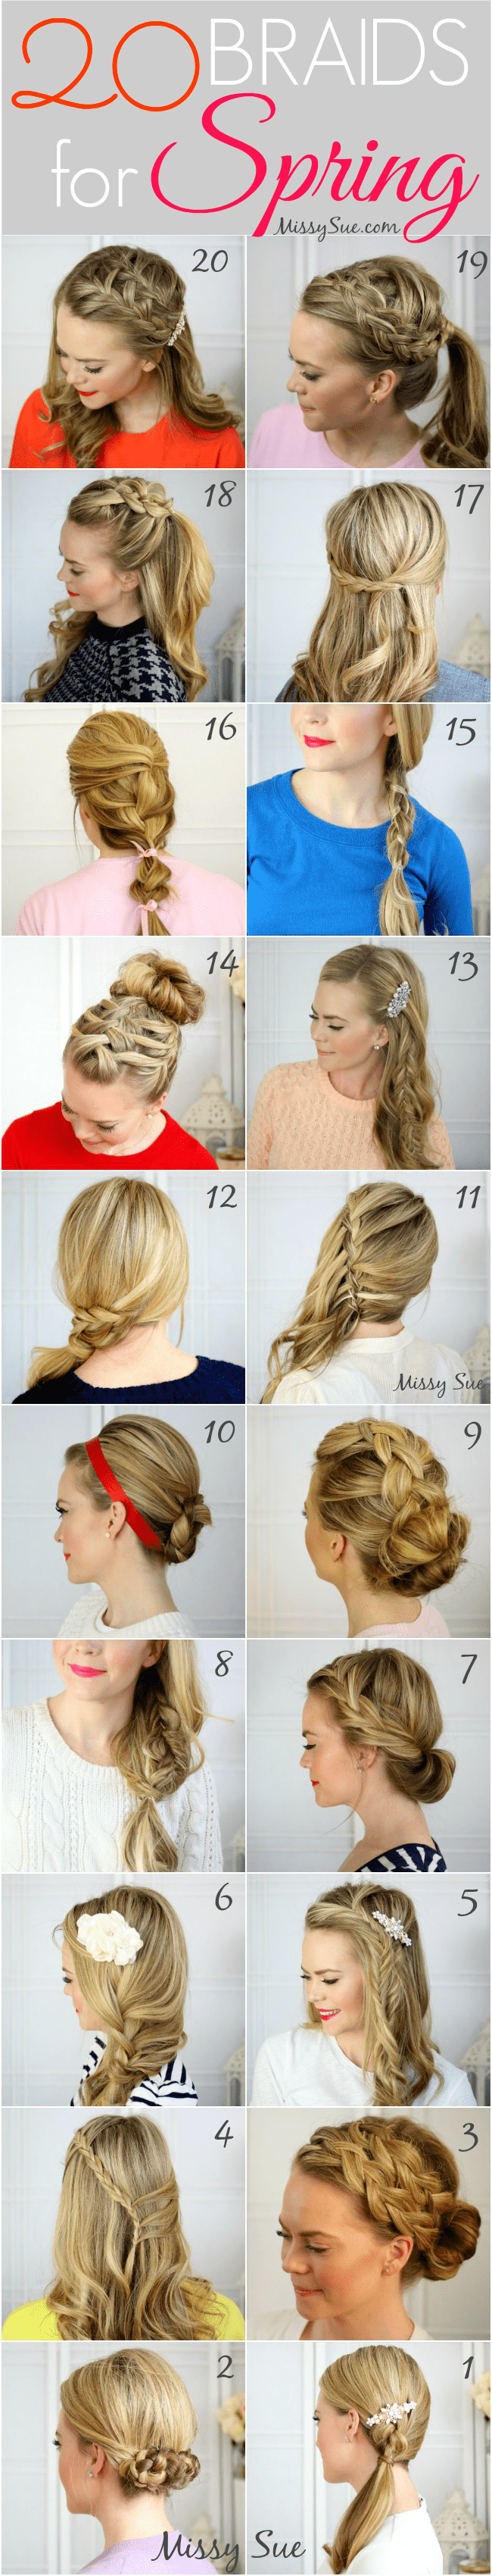 20-braids-for-spring